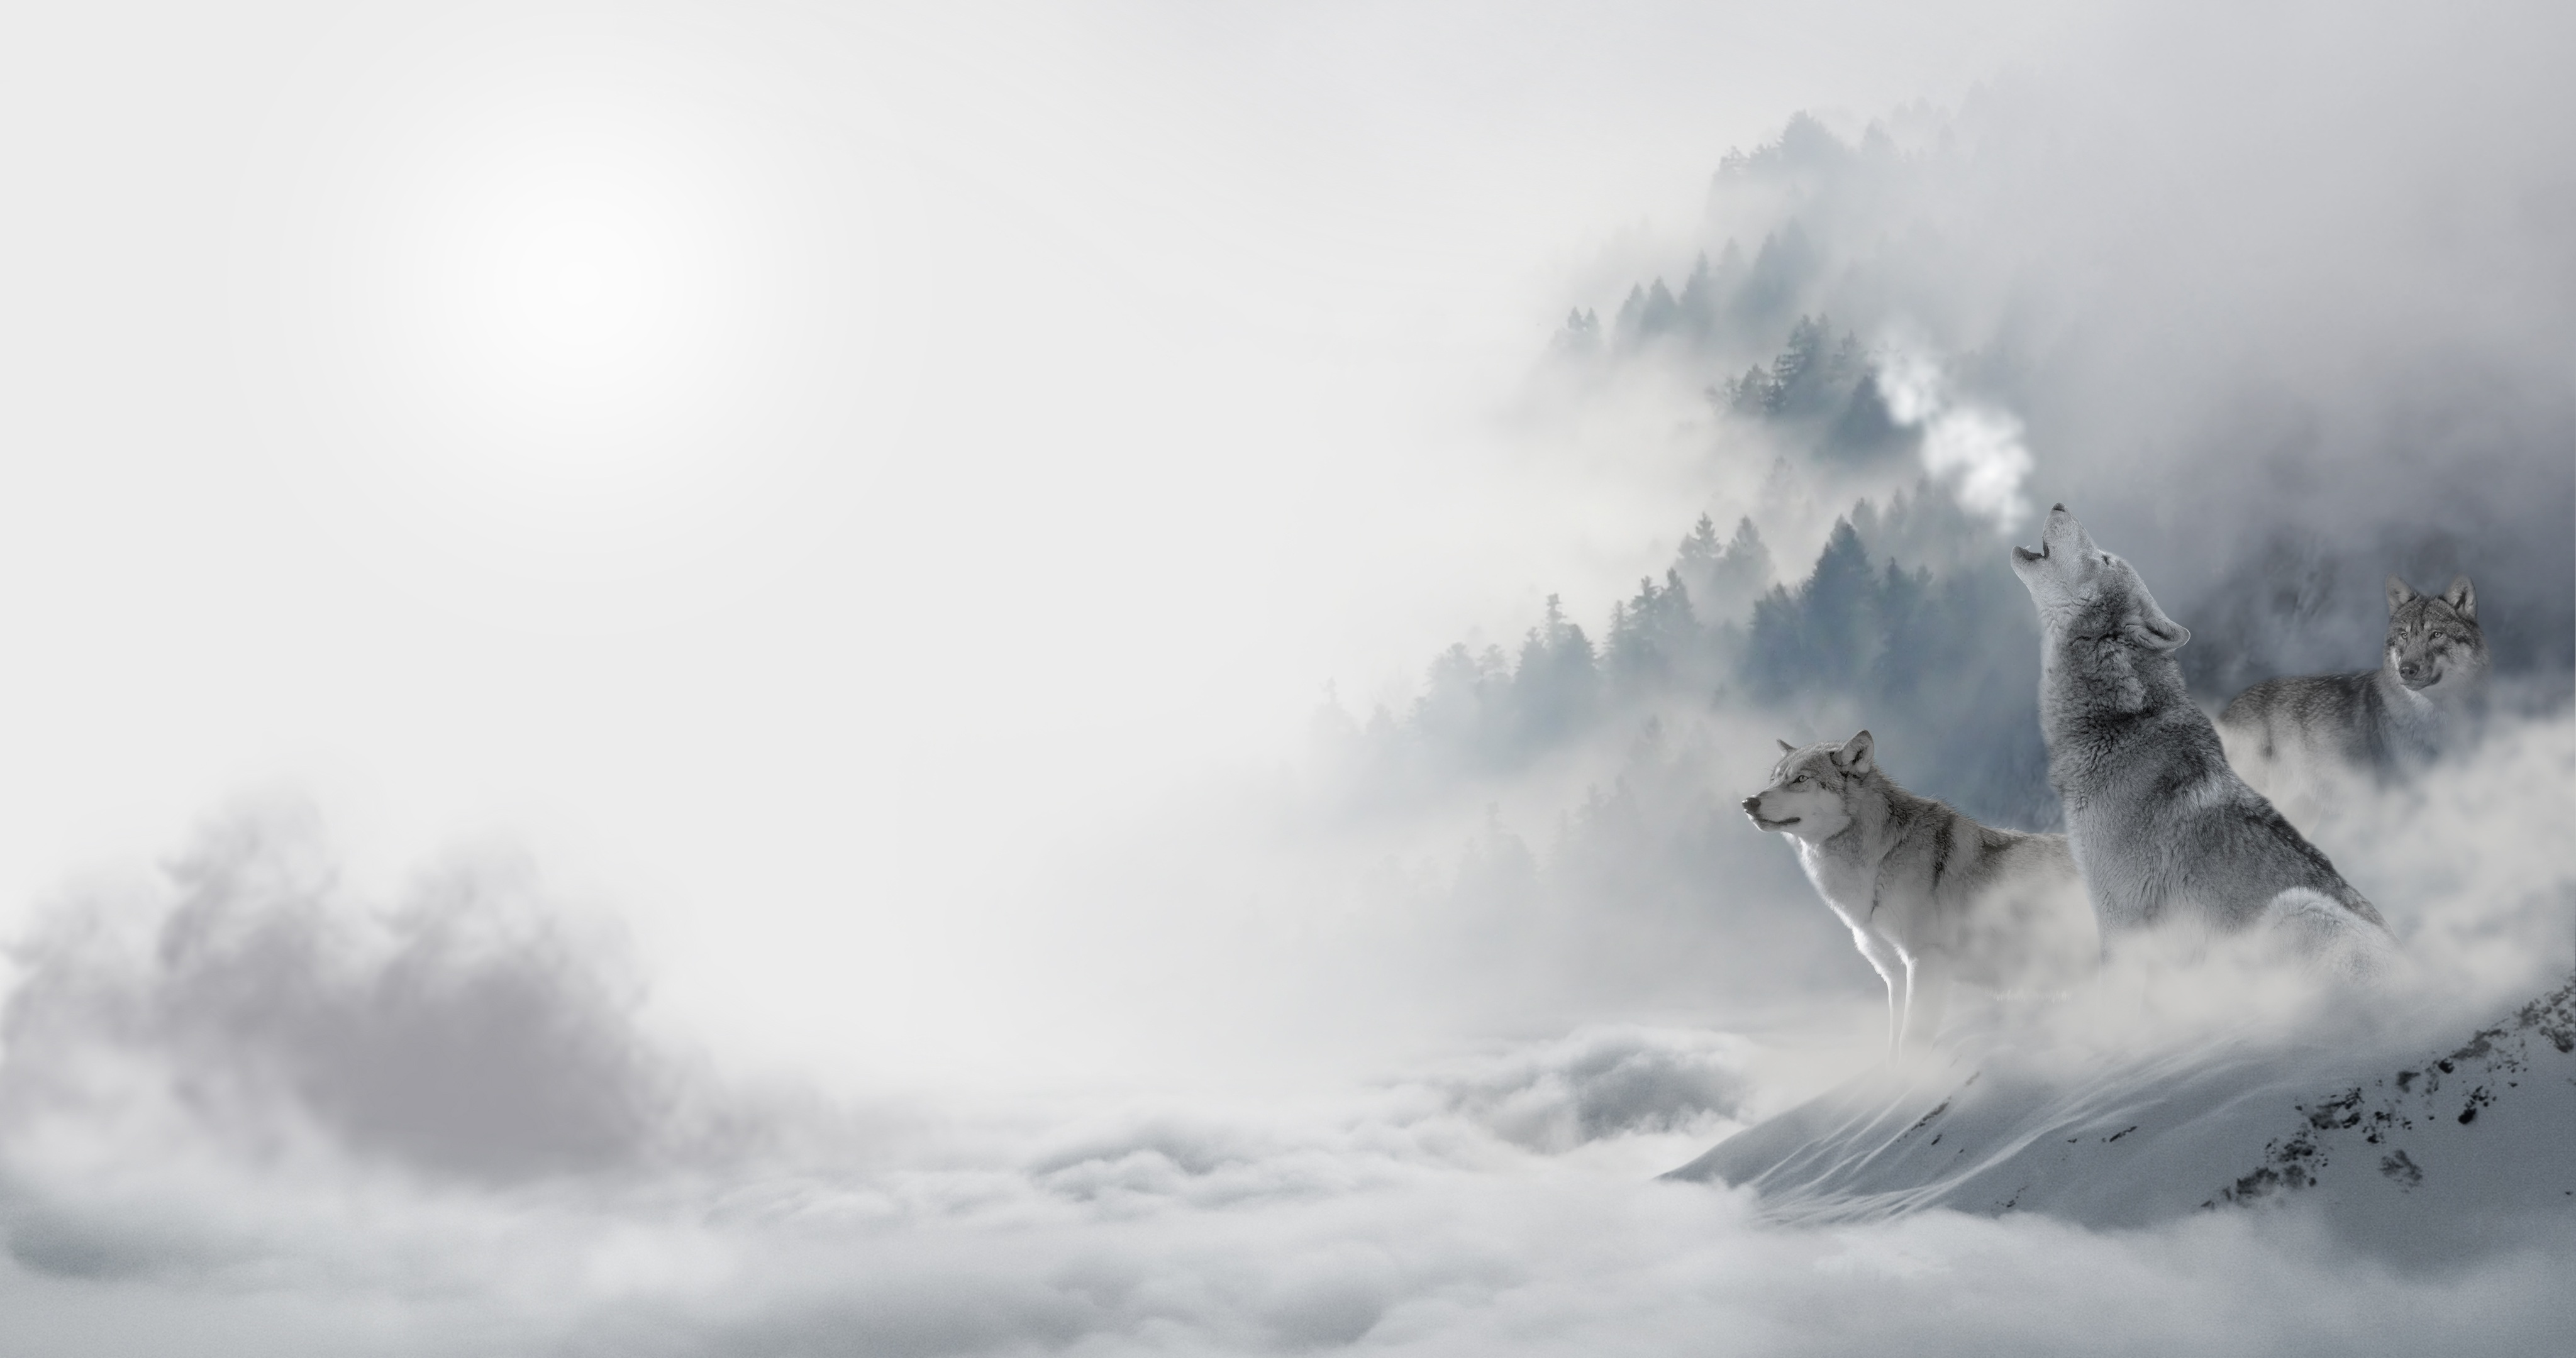 69454 download wallpaper Animals, Wolfs, Winter, Snow, Predators, Howl screensavers and pictures for free